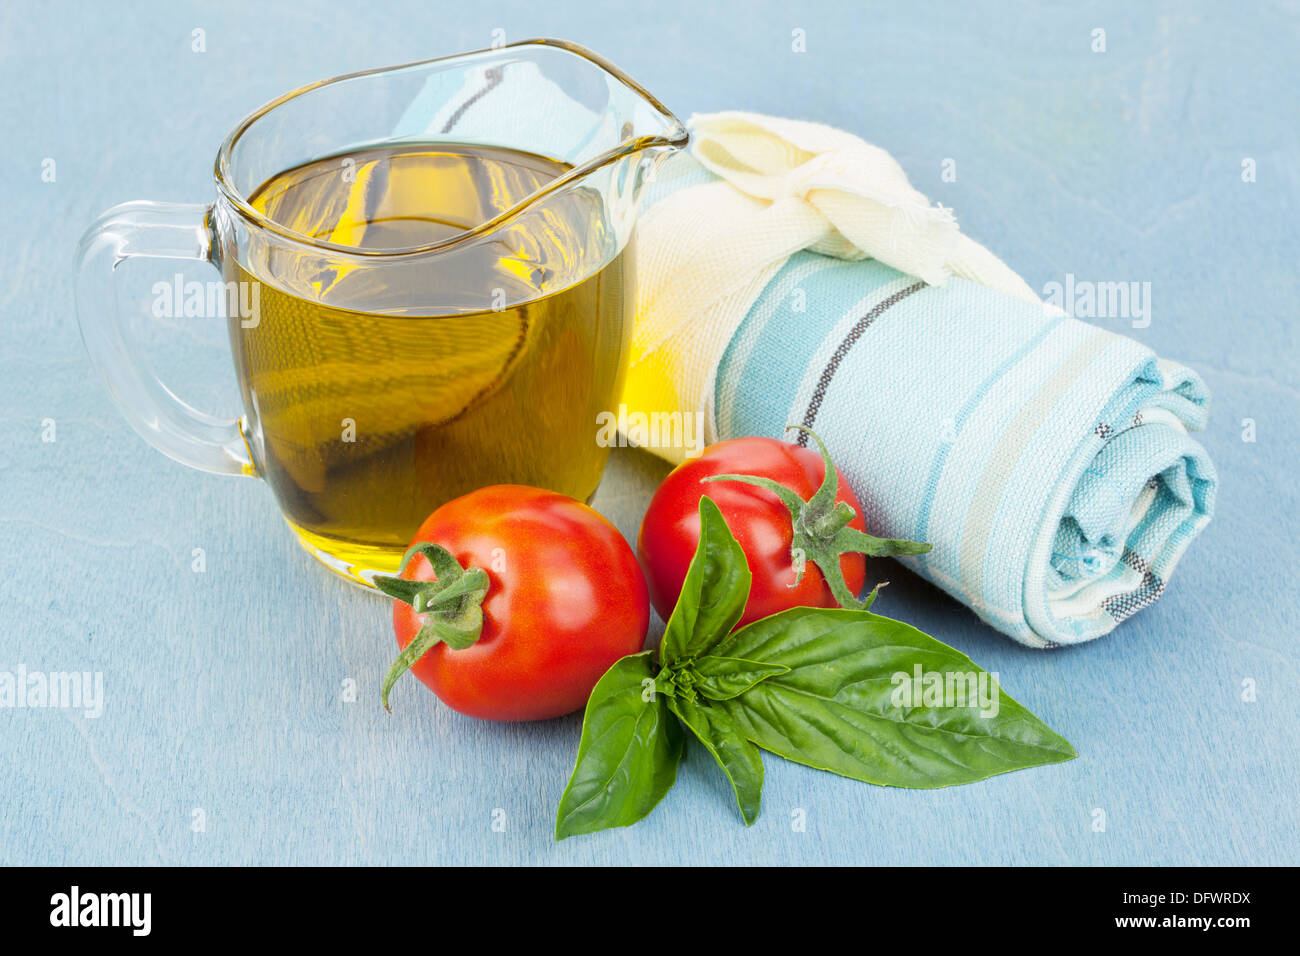 Olives, tomatoes, basil and towel on blue table - Stock Image